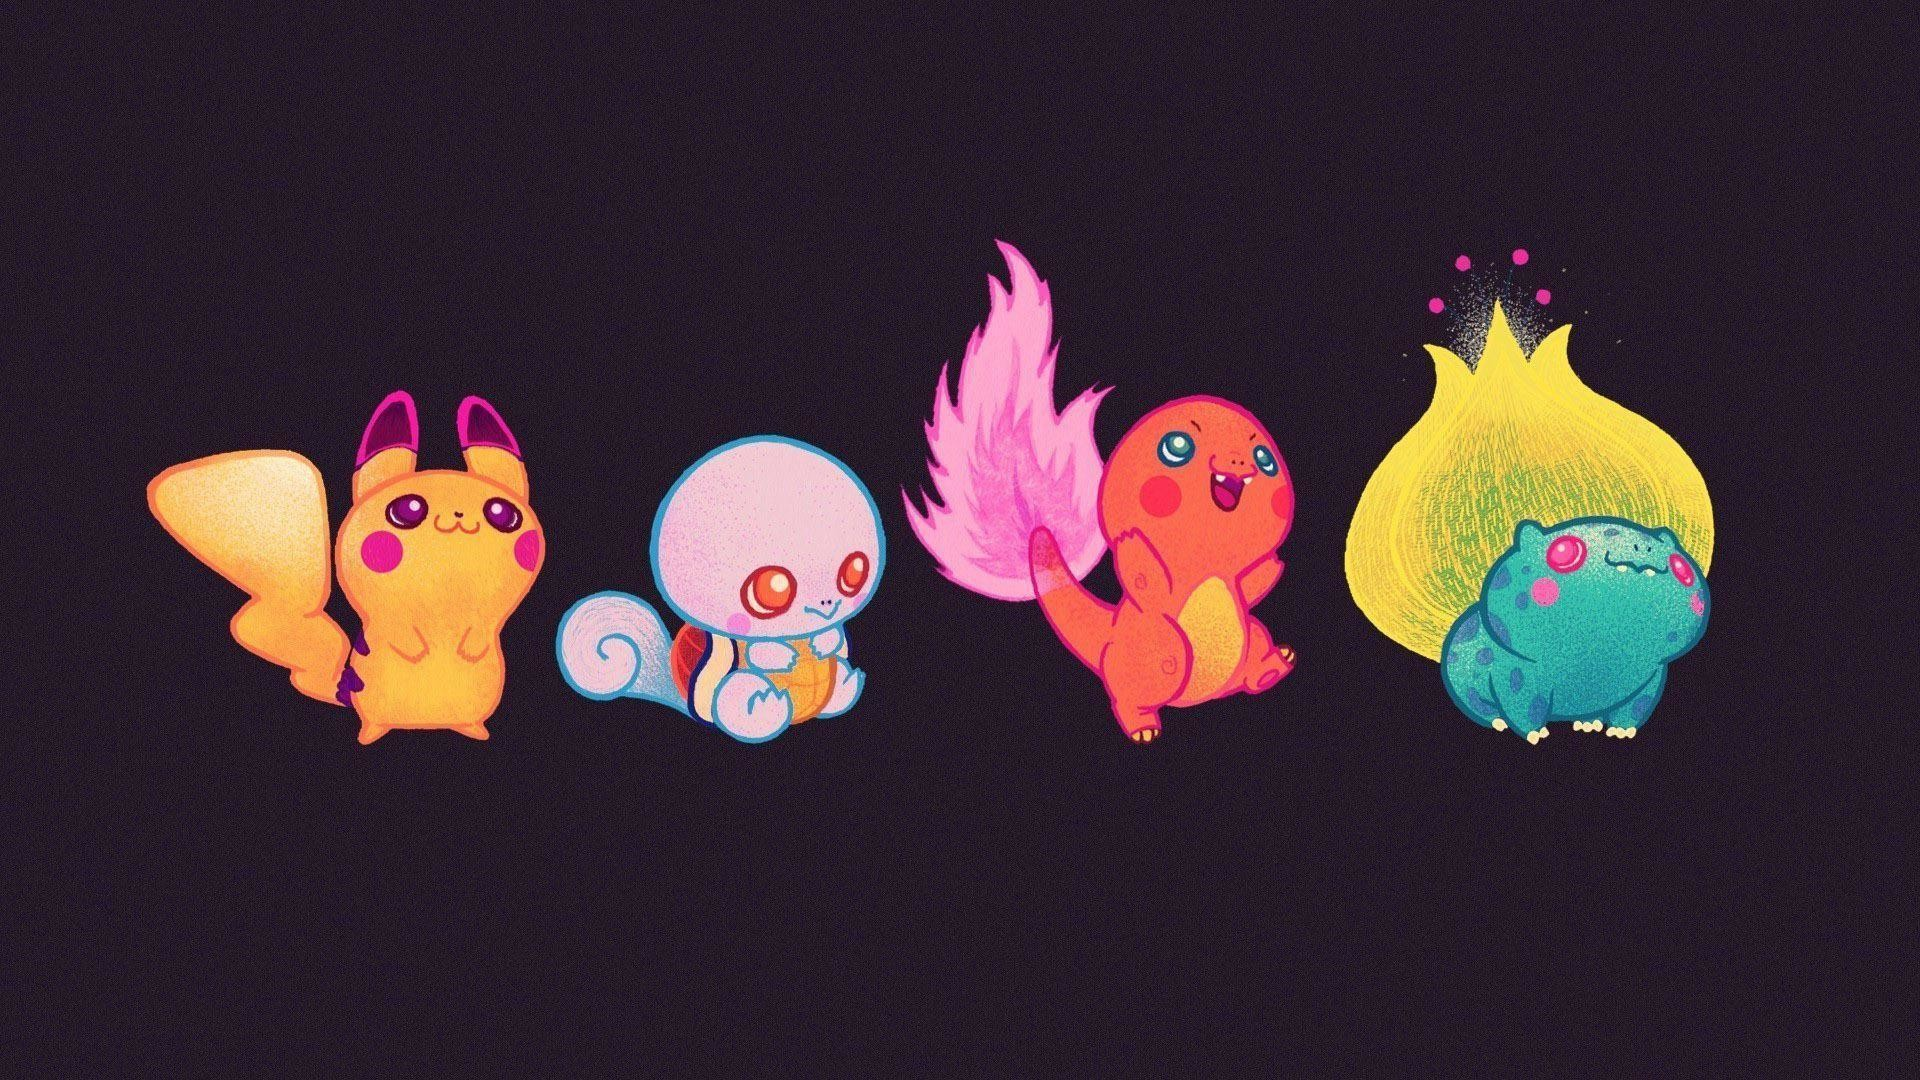 1920x1080 cute-baby-pokemon-15312 Pikachu Wallpapers HD free wallpapers .